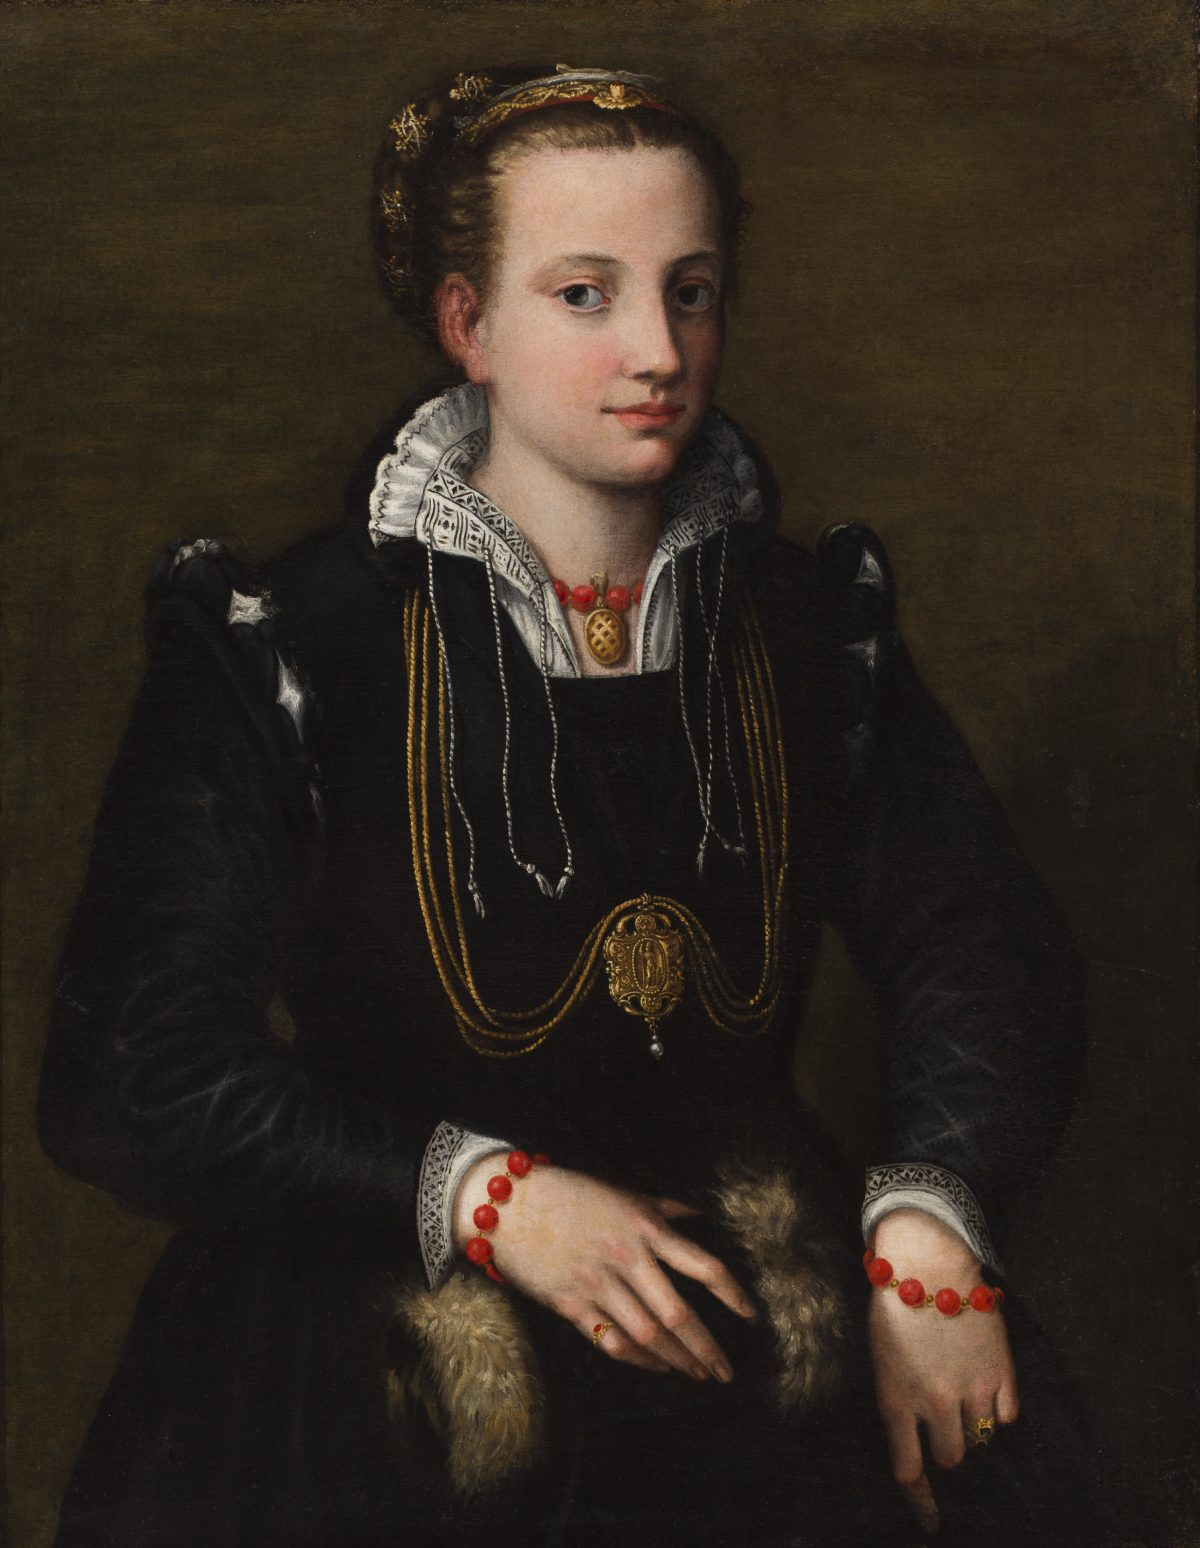 Portrait of a sitting woman with hair in a decorated bun and wearing a long dark robe